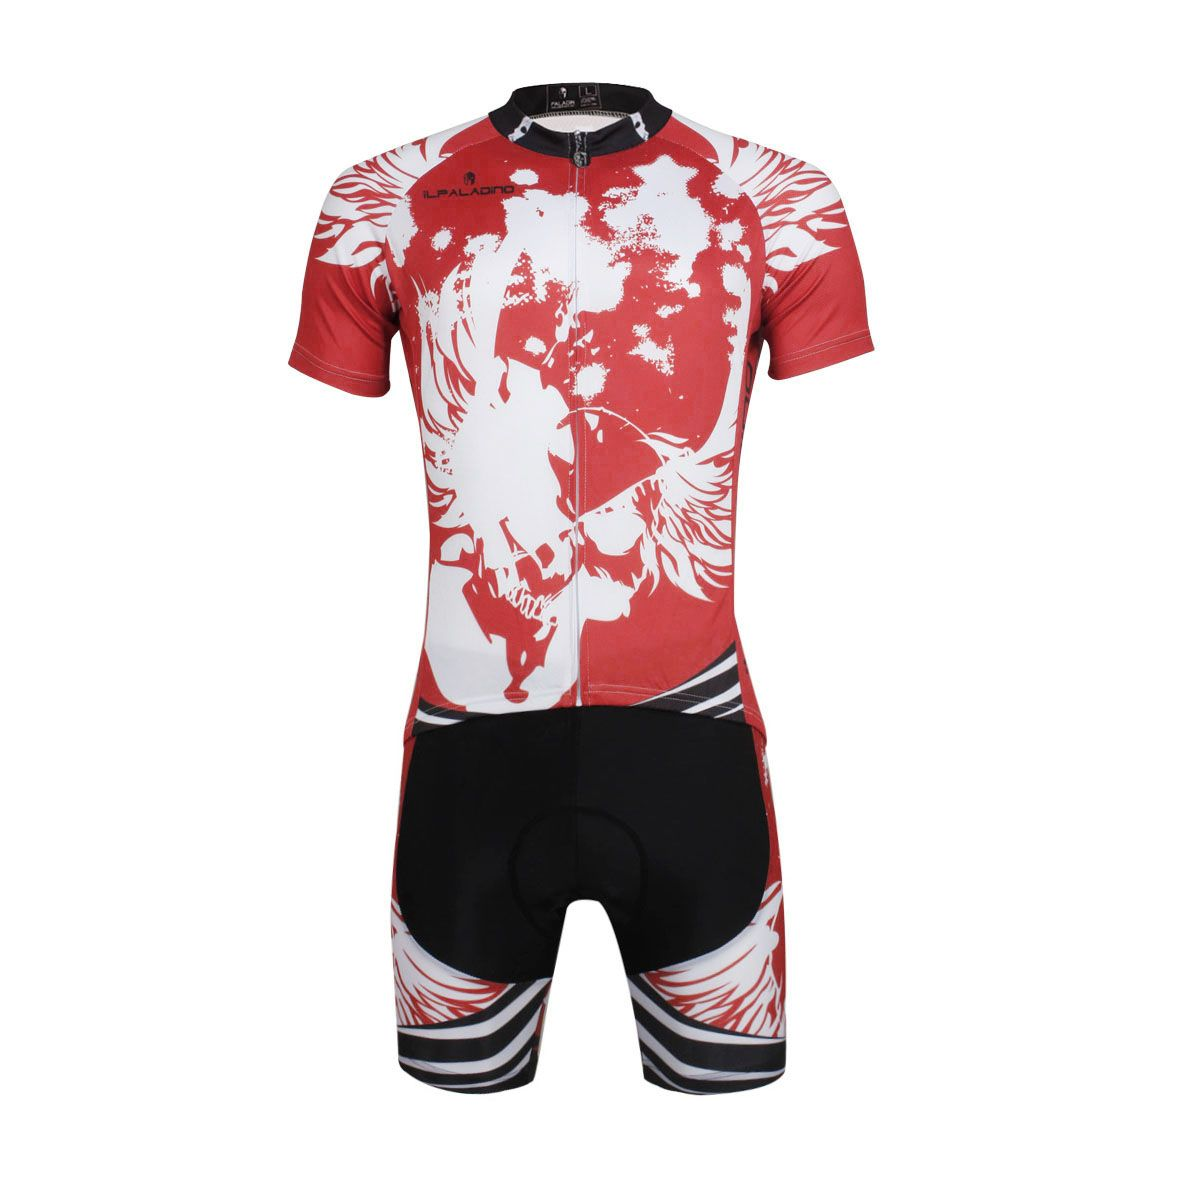 cycling apparel jackets jersey shorts bibs cycling on men s insulated coveralls cheap id=76747